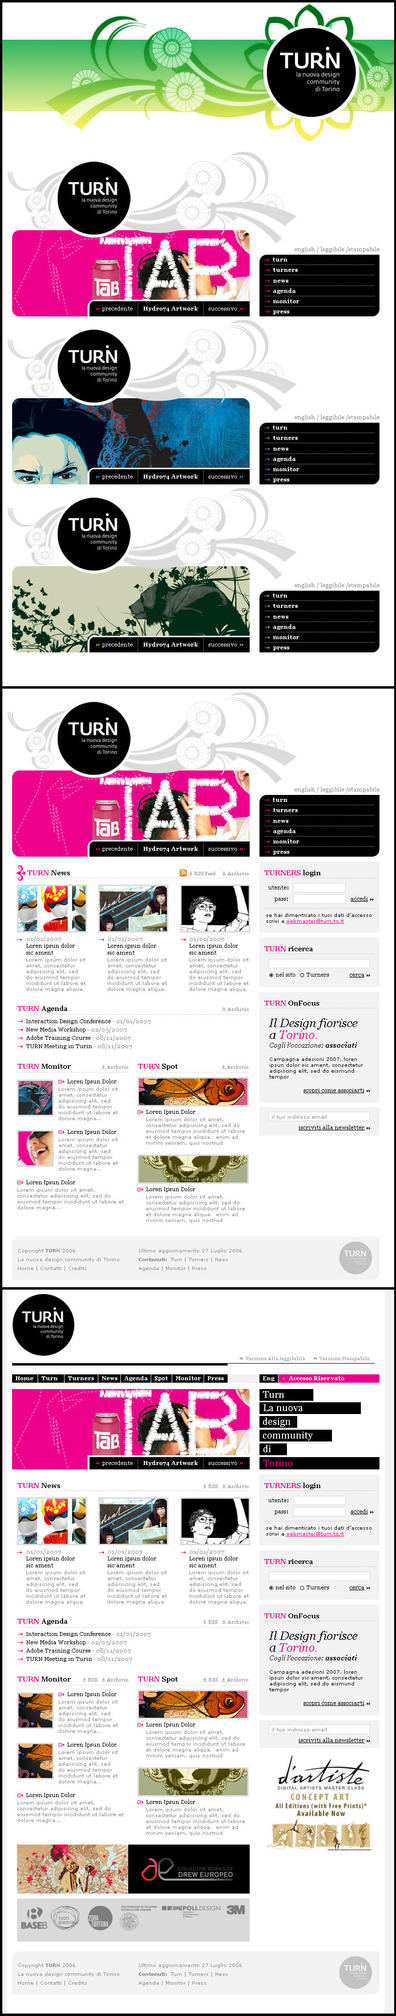 TURN Homepage v2.0 by insanedesign